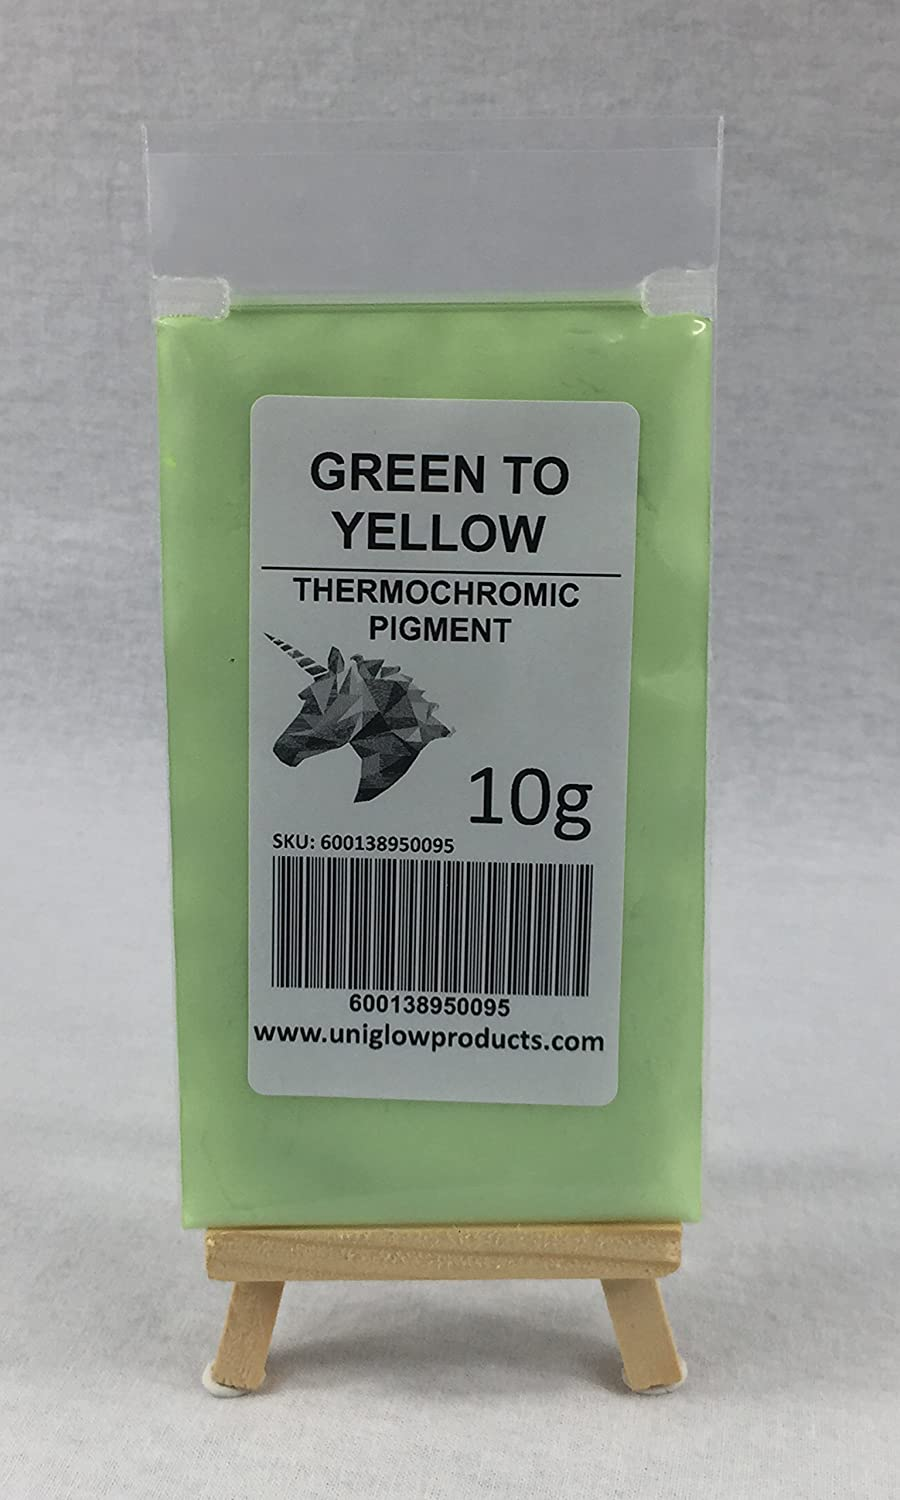 5g, Green to Yellow UniGlow ThermoChromatic Pigment